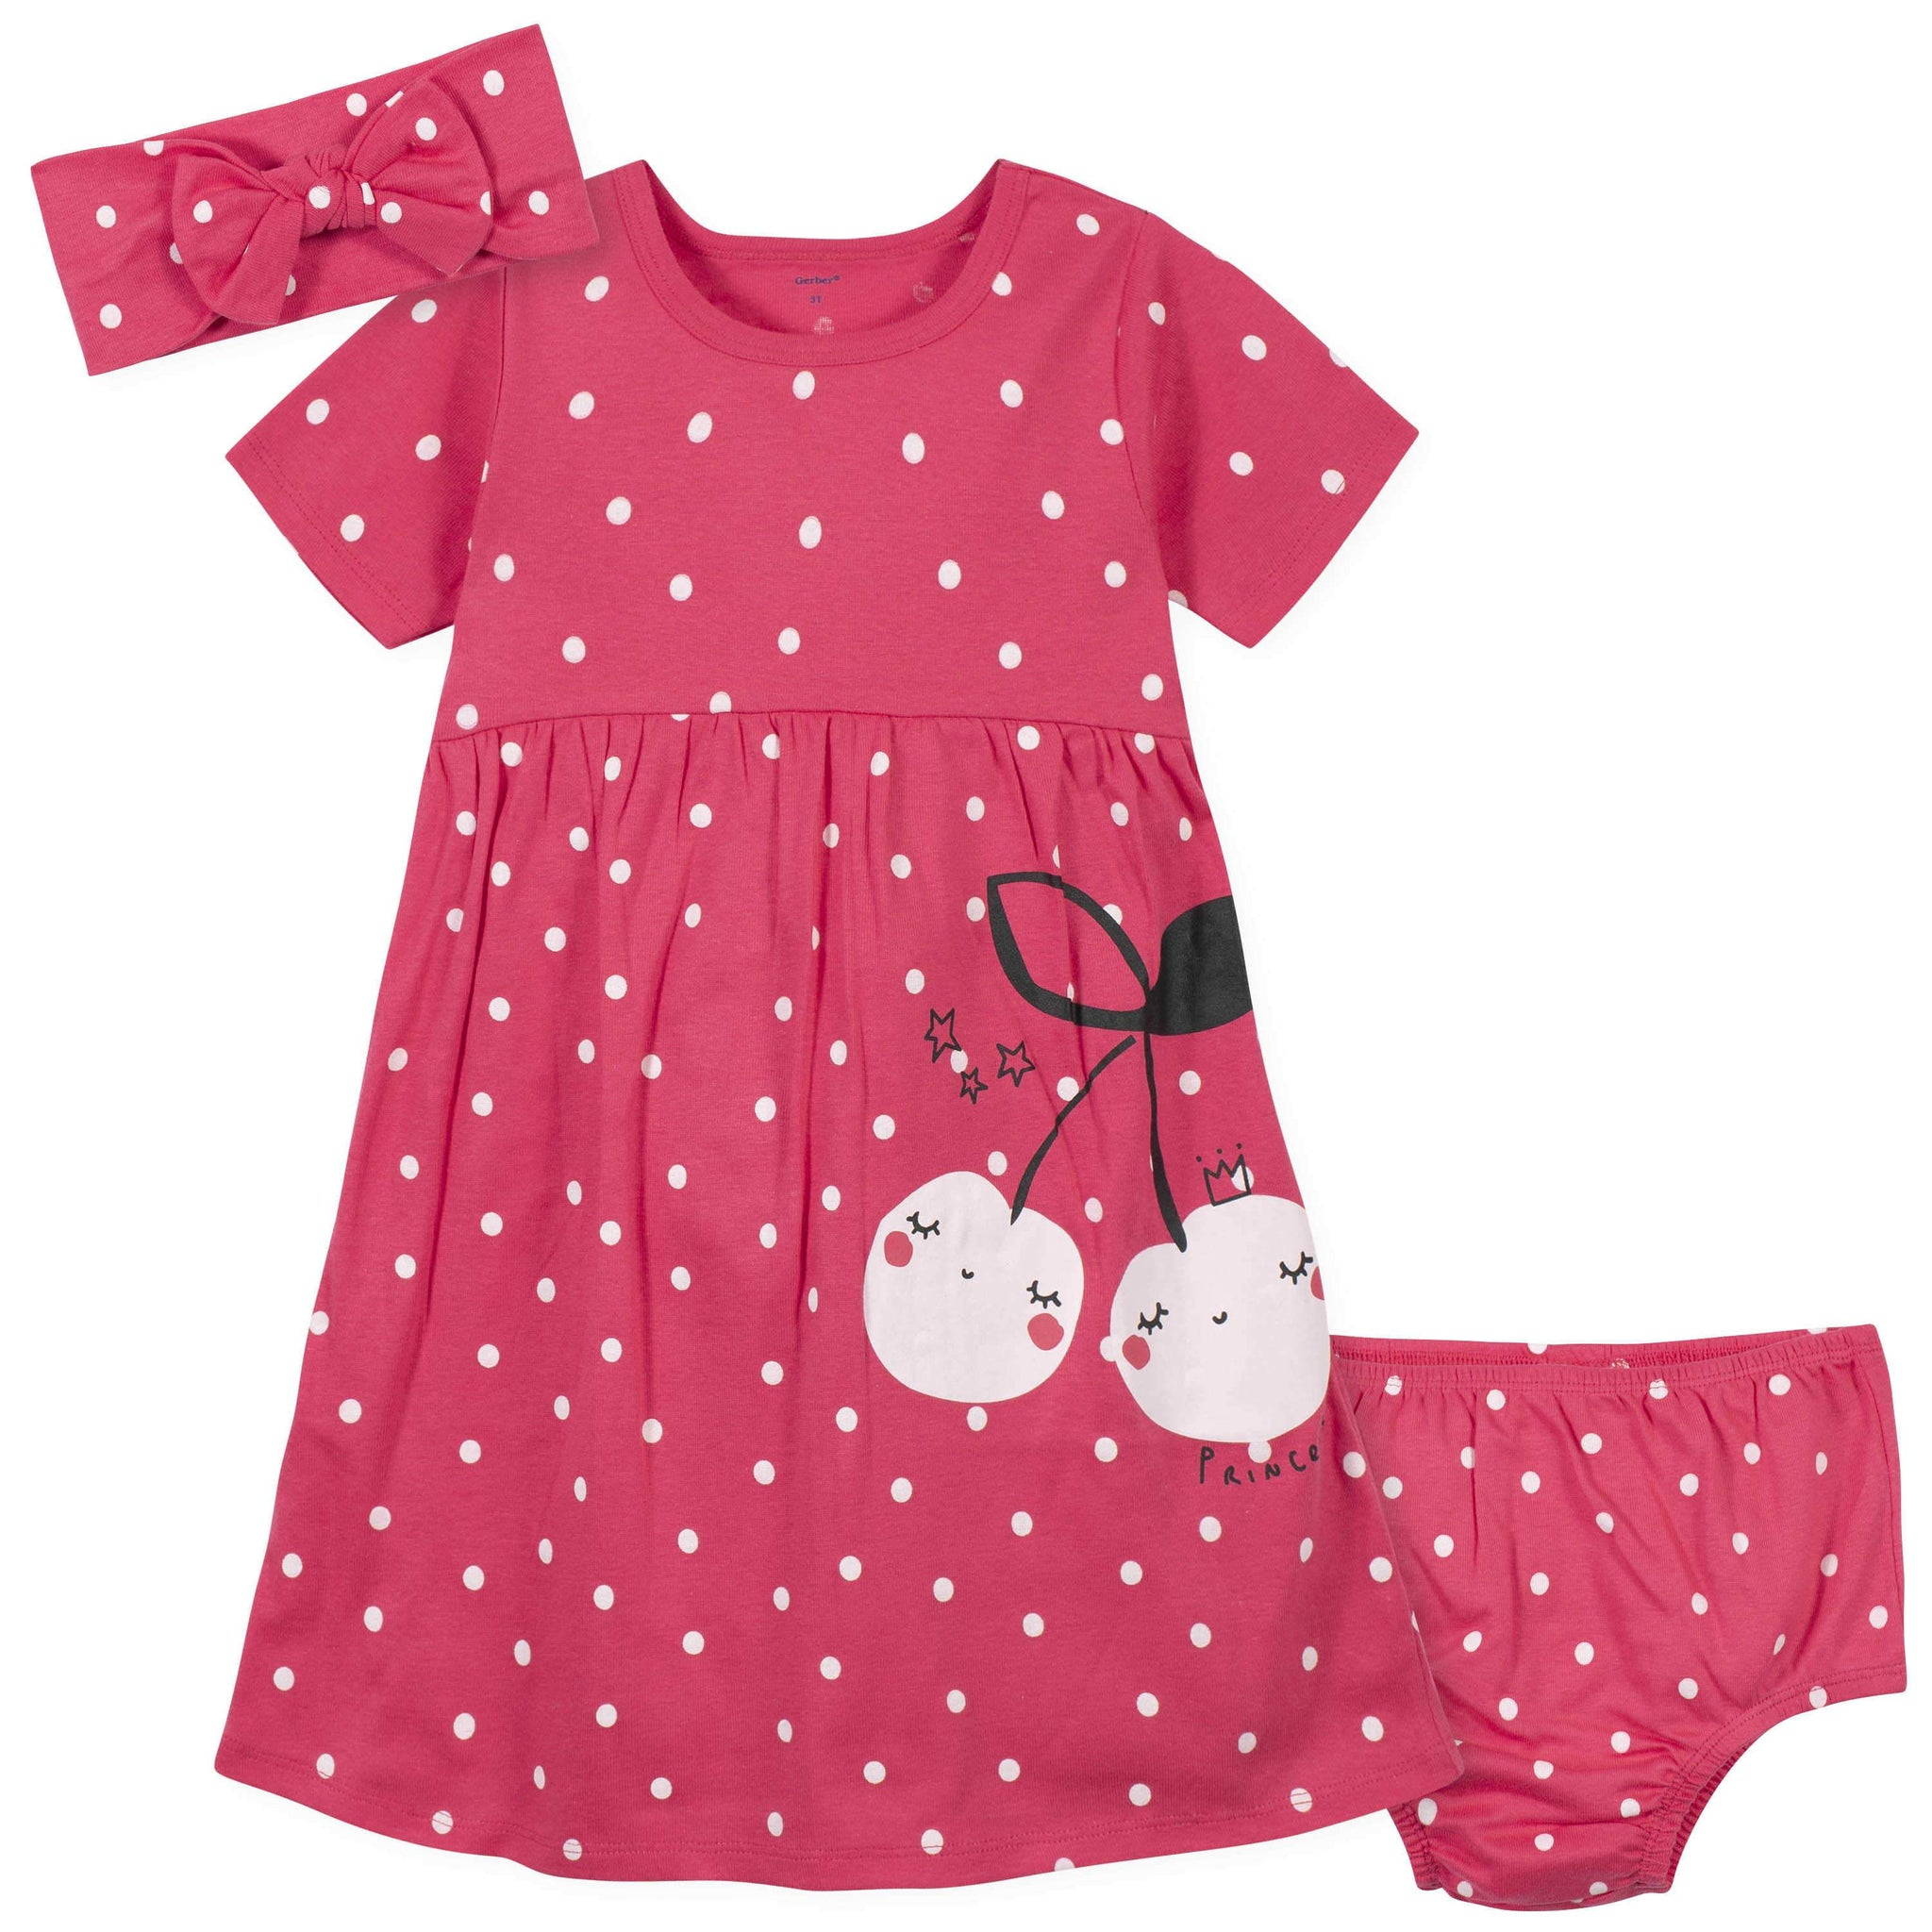 3-Piece Toddler Girls Cherry Dots Dress, Diaper Cover, and Headband Set